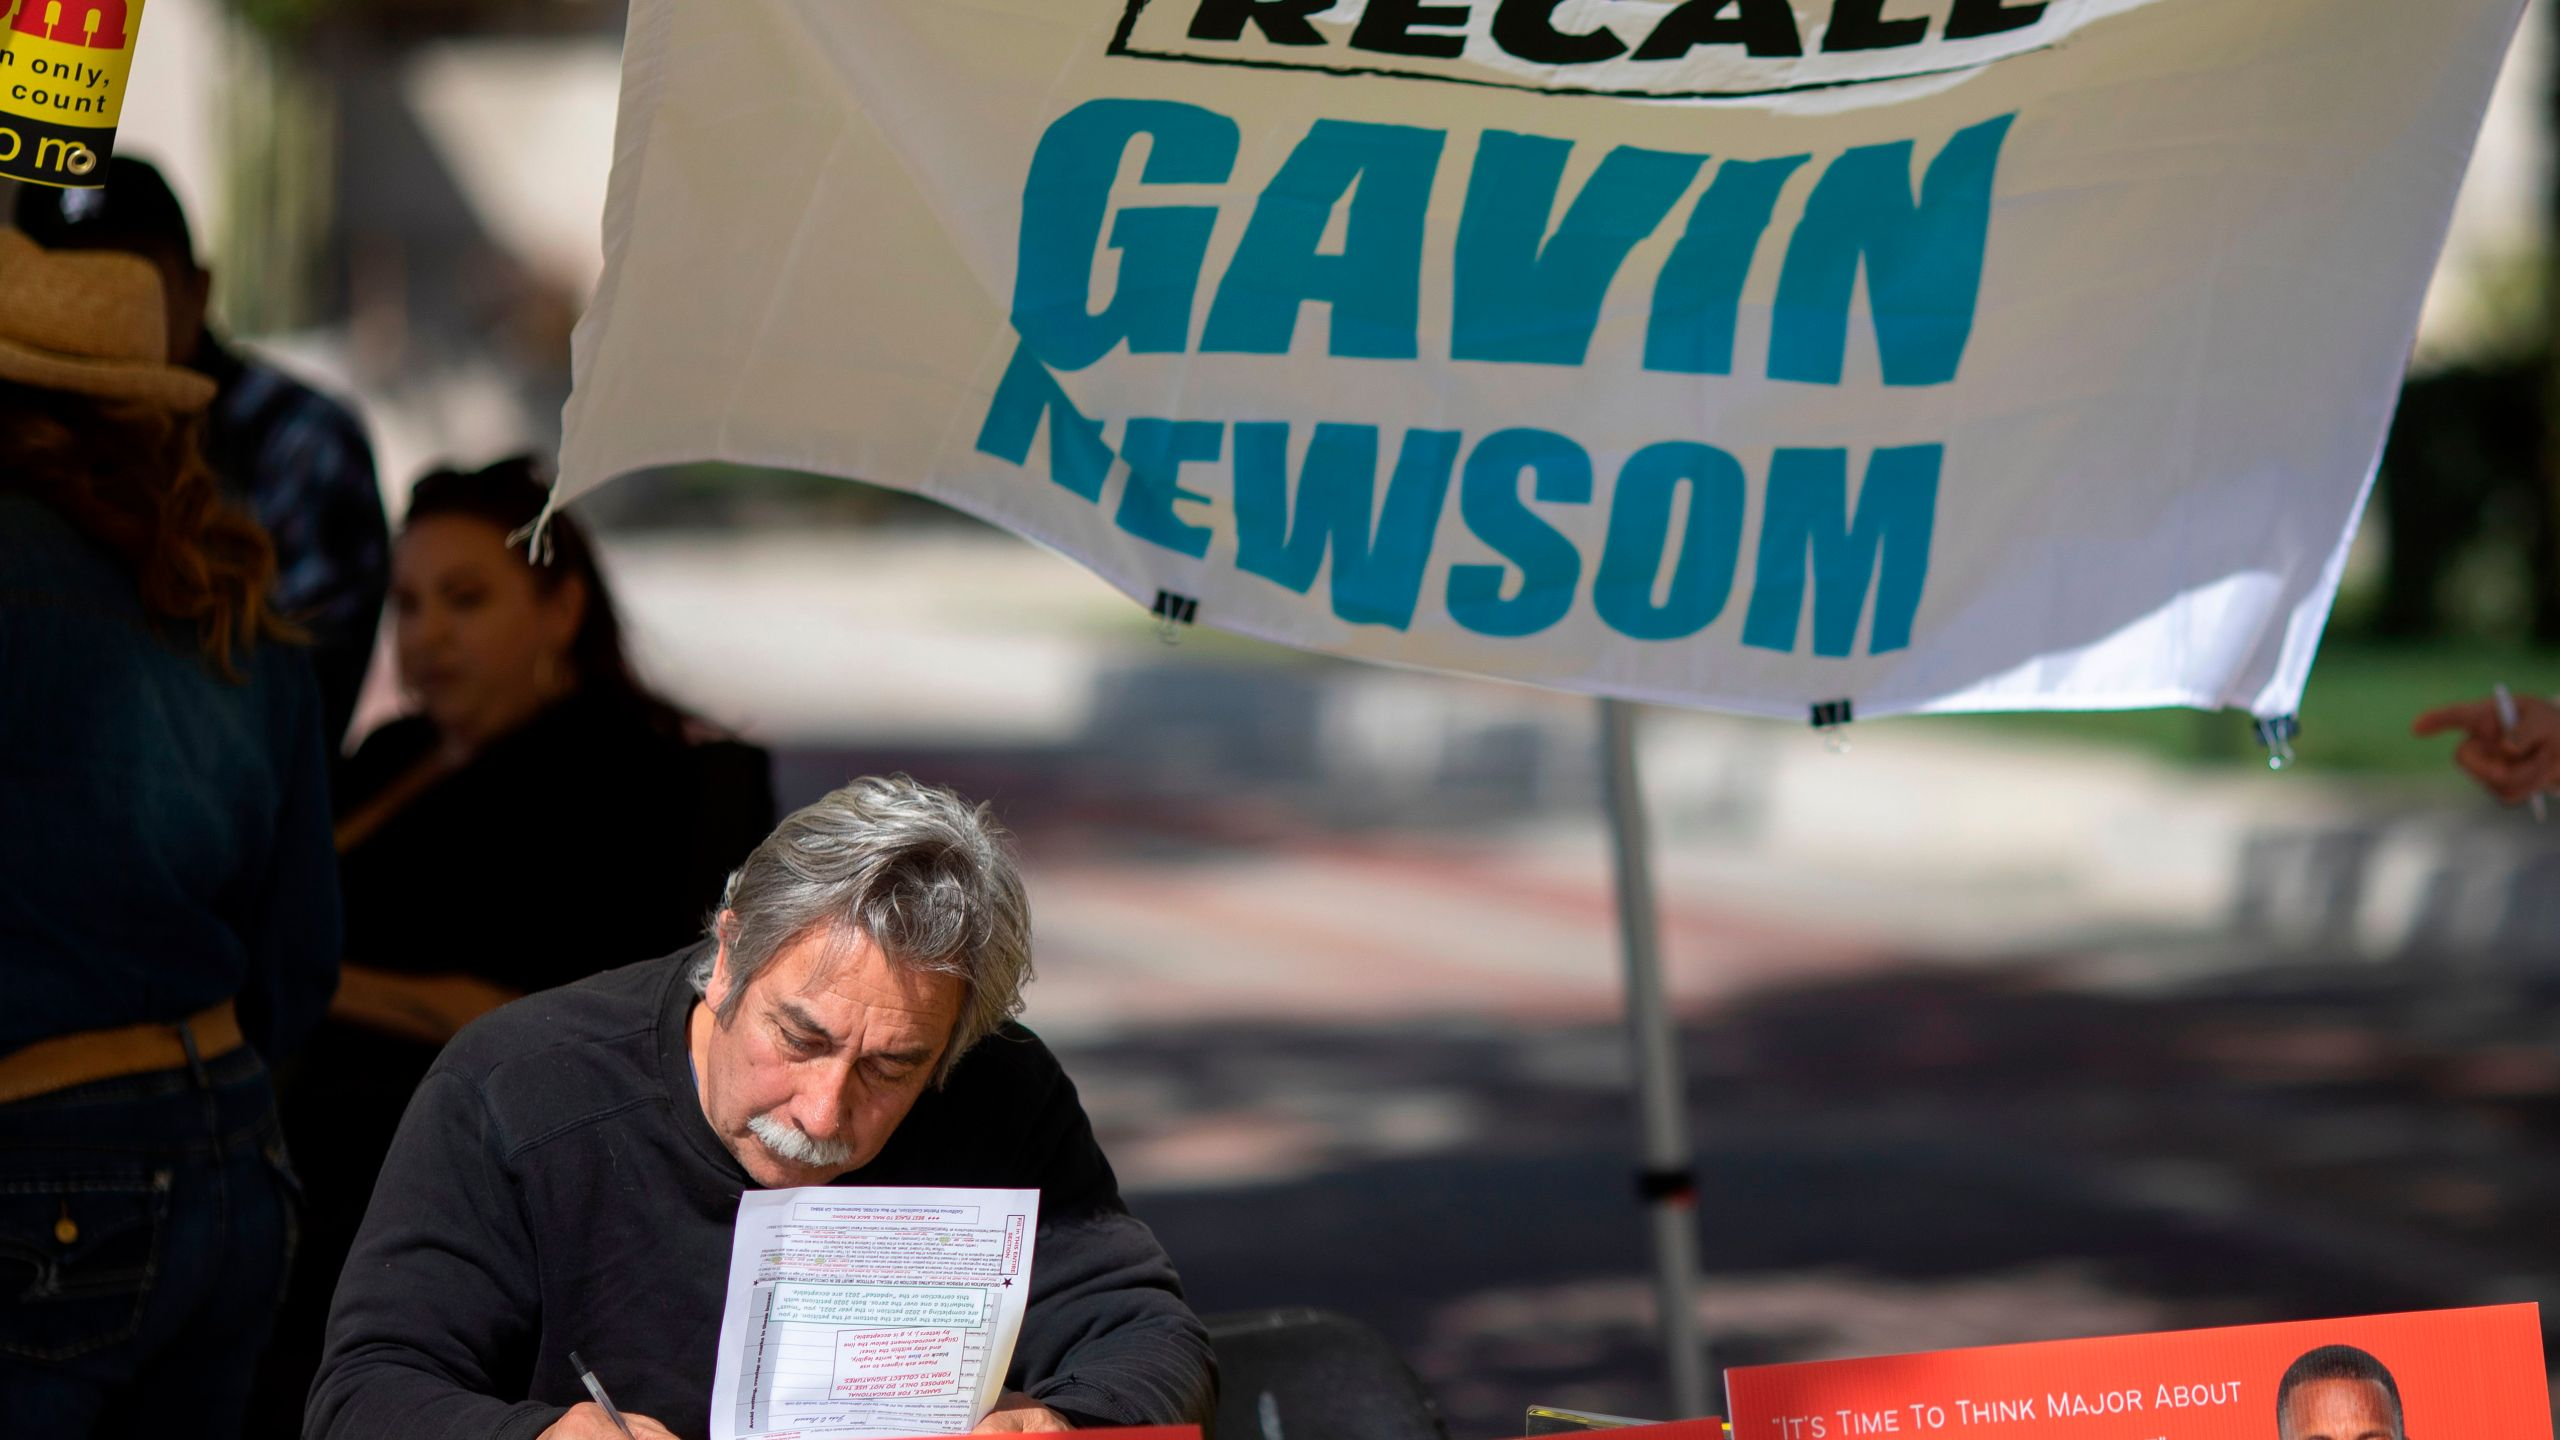 Paul Von Lutzow signs a petition as conservative activists gather signatures in a recall effort against California Governor Gavin Newsom near Pasadena City Hall, in Pasadena, California on February 28, 2021. (DAVID MCNEW/AFP via Getty Images)